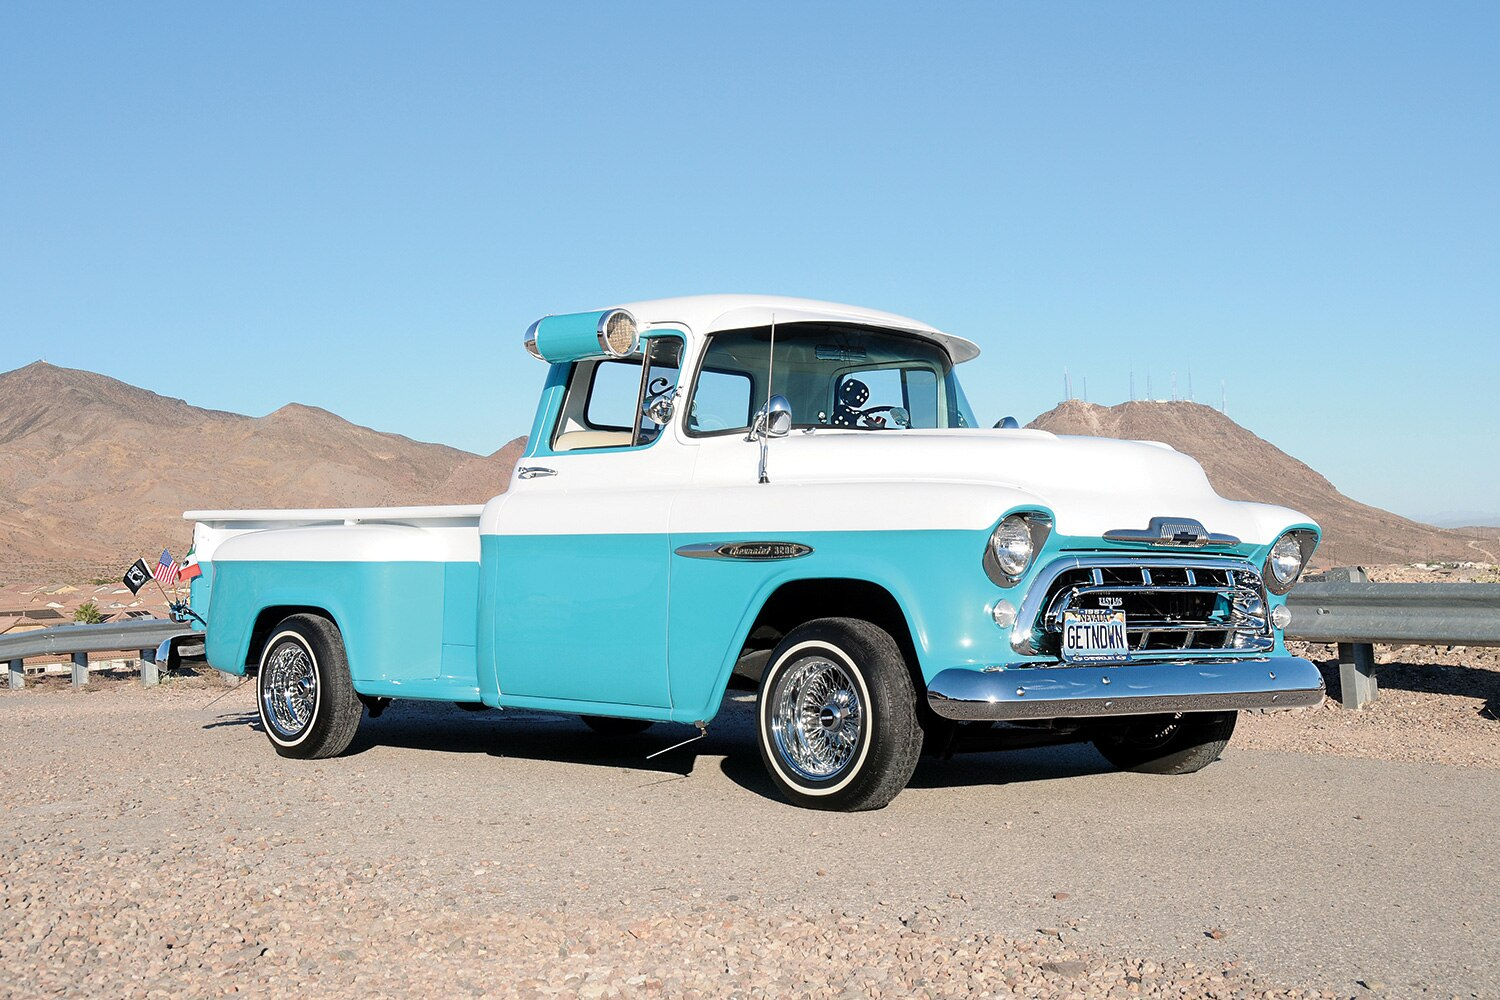 1957-chevrolet-truck-front-right-side-view-promo